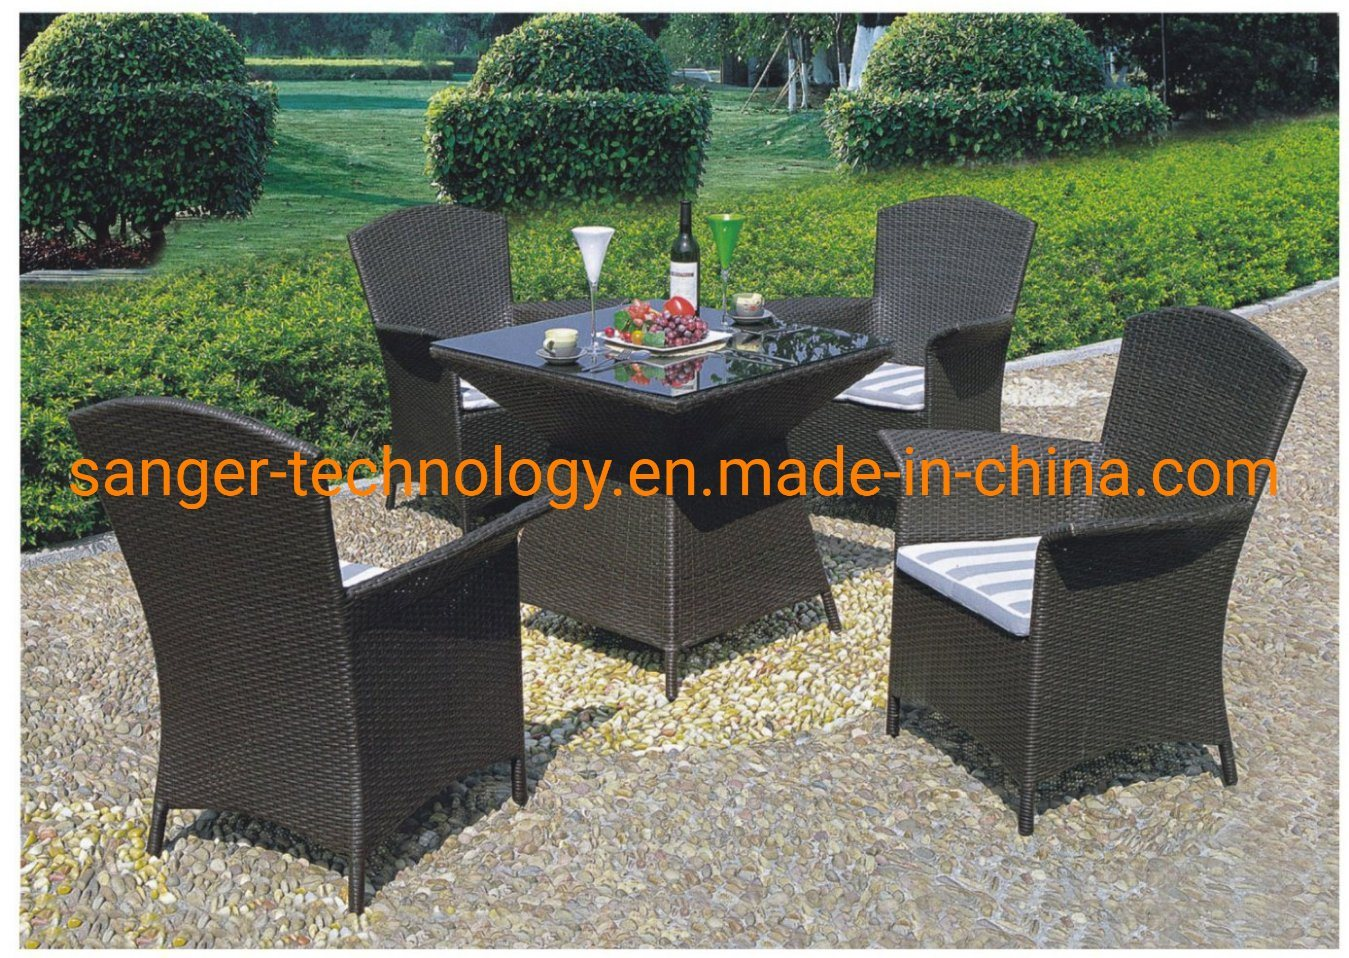 China Patio Furniture 5 Pcs All Weather Resistant Heavy Duty Wicker Dining Set With Chairs Perfect For Balcony Patio Garden Poolside 5 Piece Wicker Table And Chair China Outdoor Furniture Sets